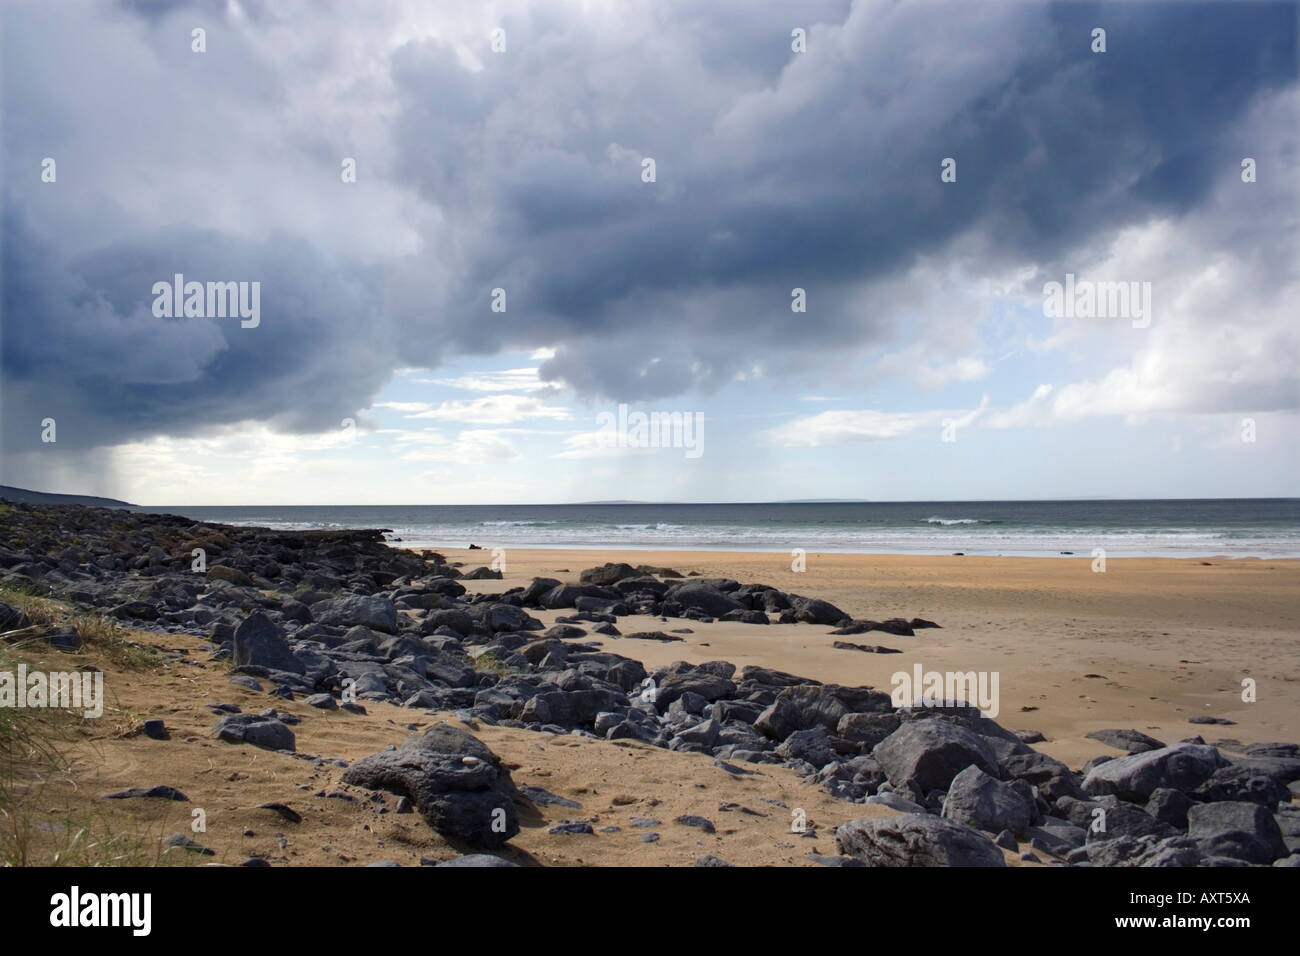 View along Fanore beach. West coast of Ireland. County Clare. Rain clouds. Cumulonimbus clouds. Bad weather. - Stock Image